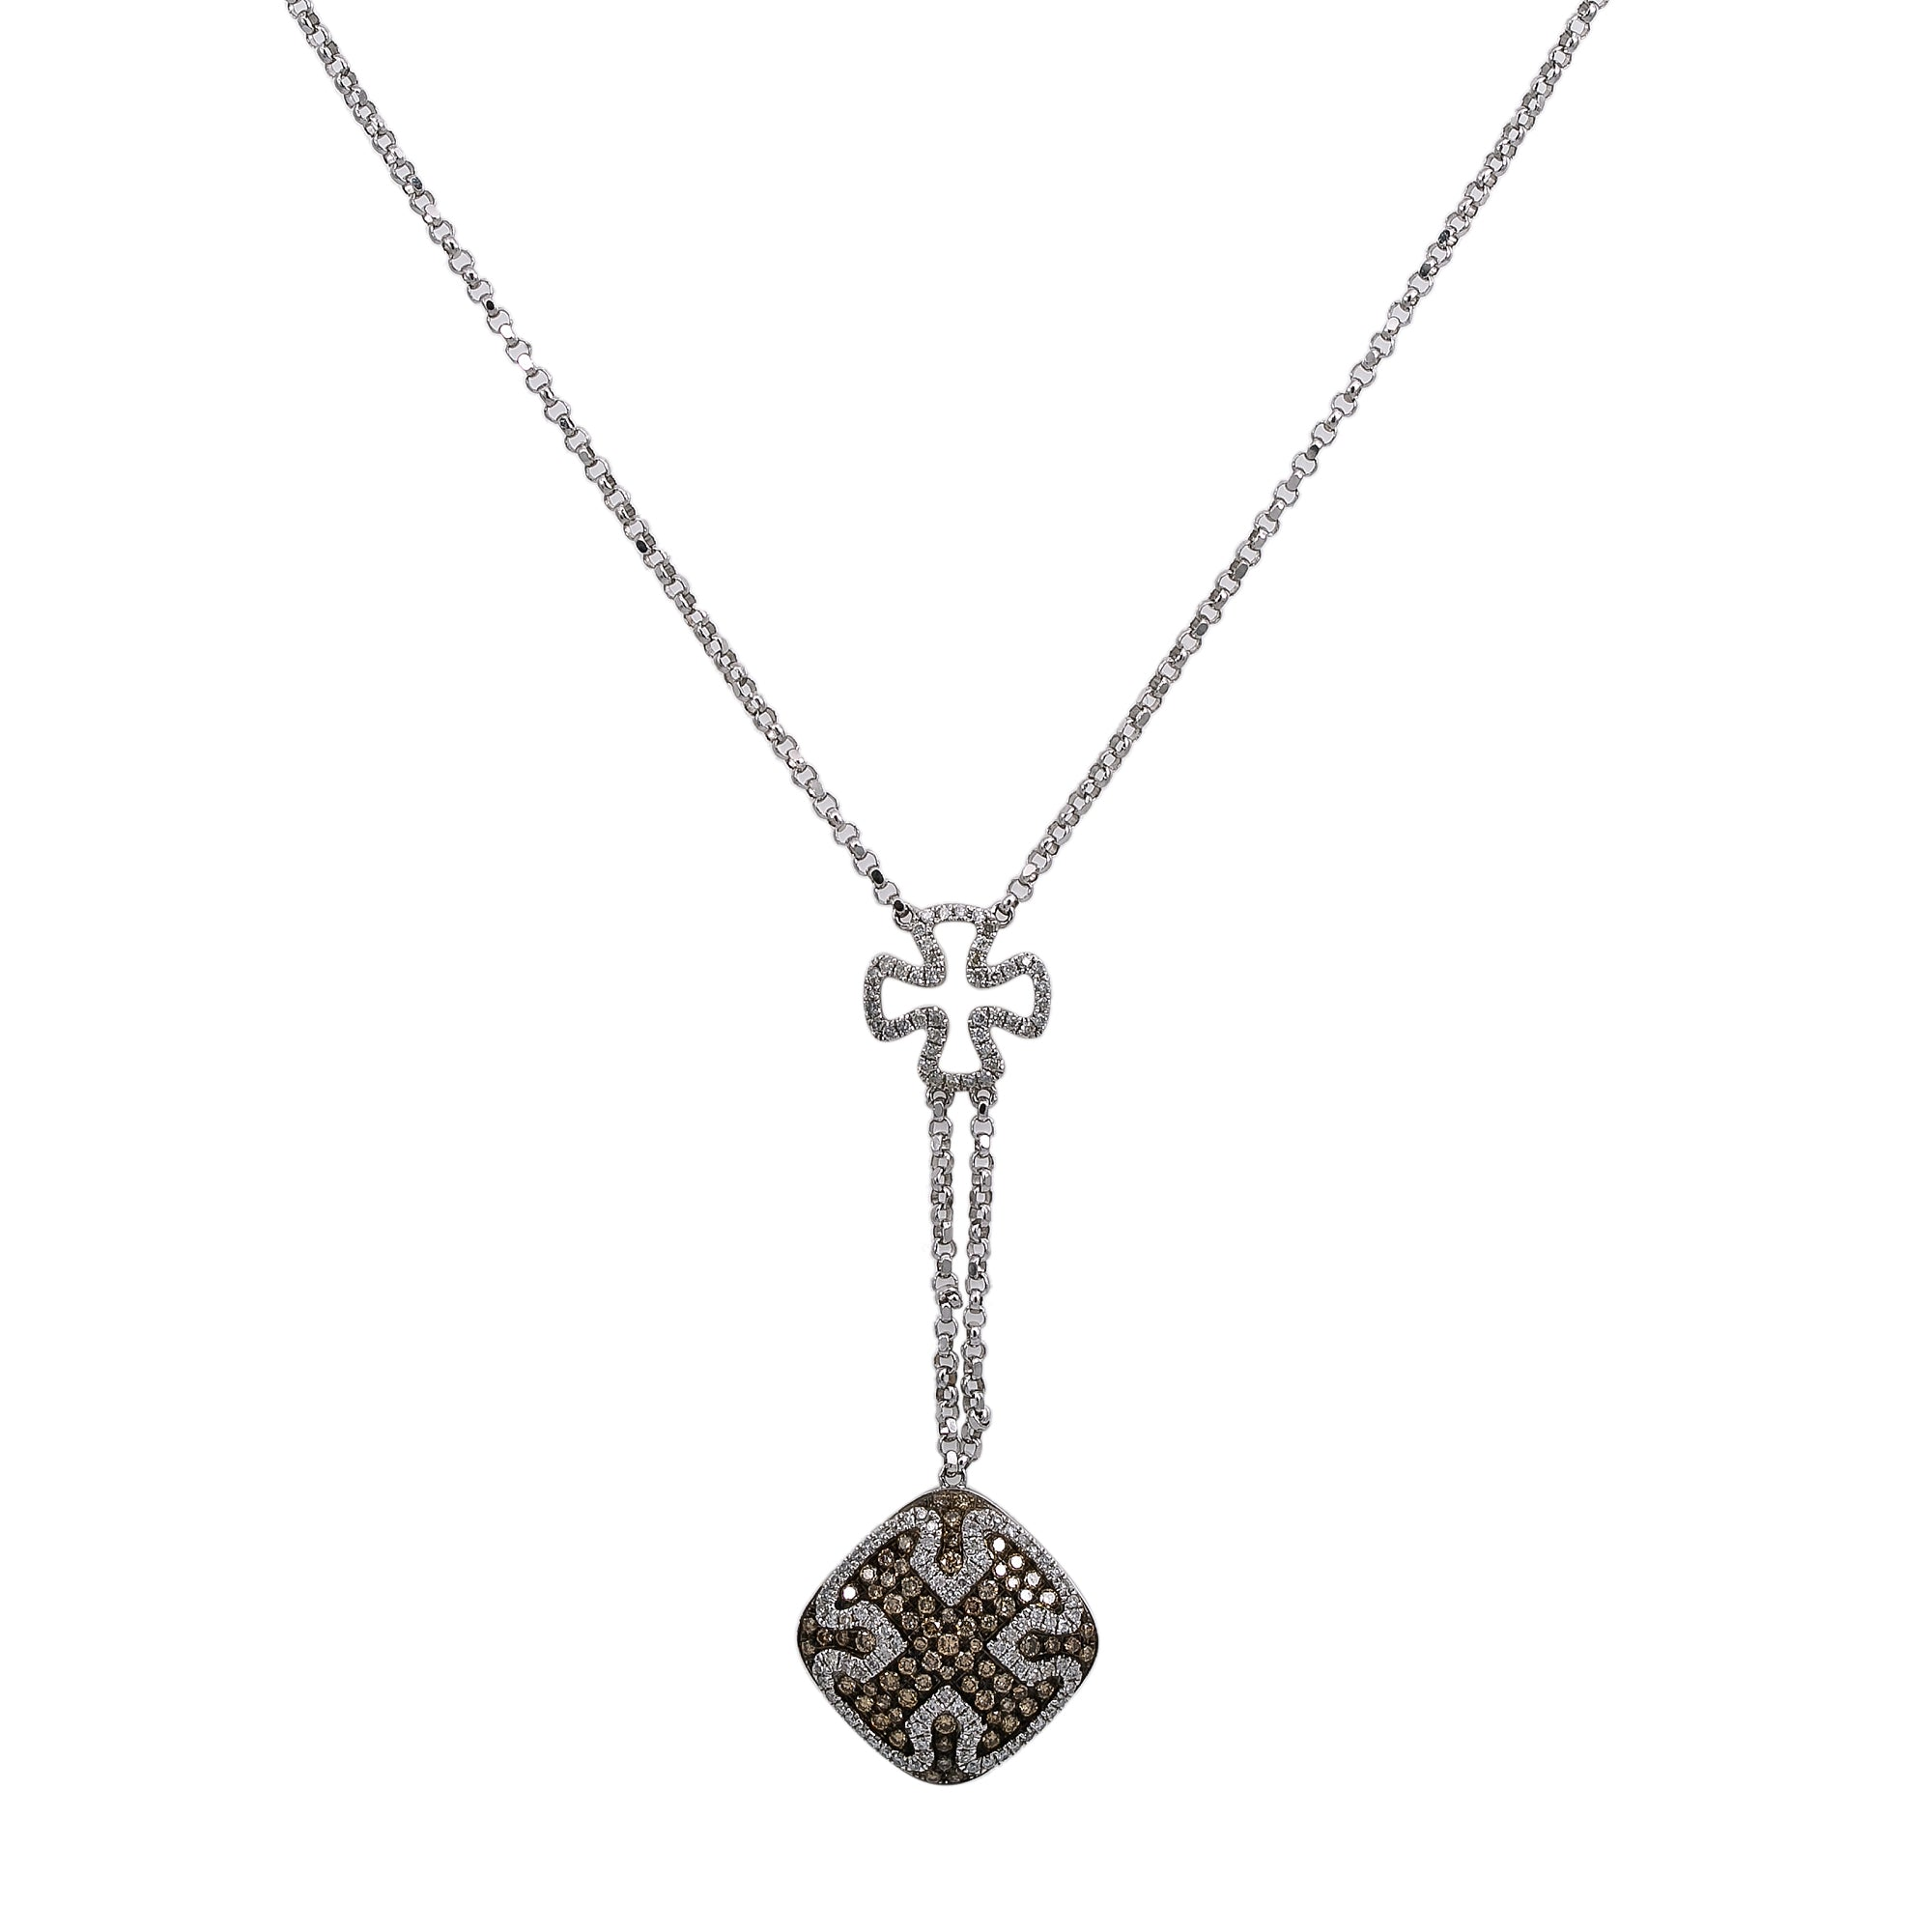 14K White Gold Women's Necklace, chain and diamonds